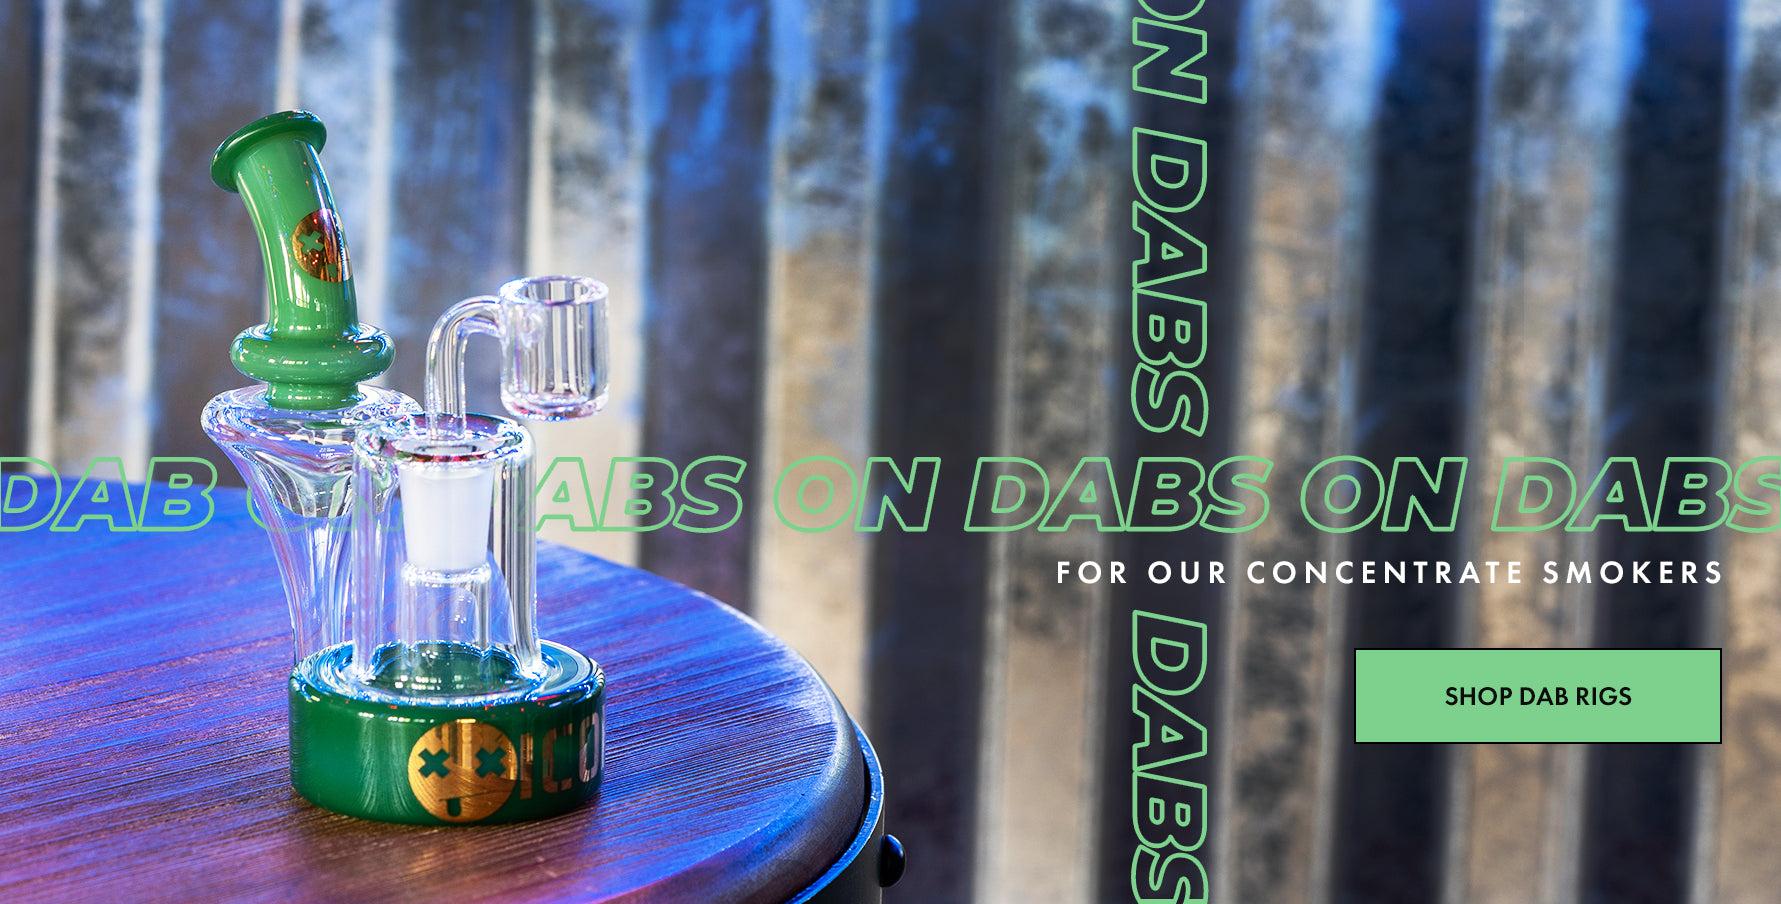 Dab on dabs!  DankStop has your dream dab rig for your concentrate needs.